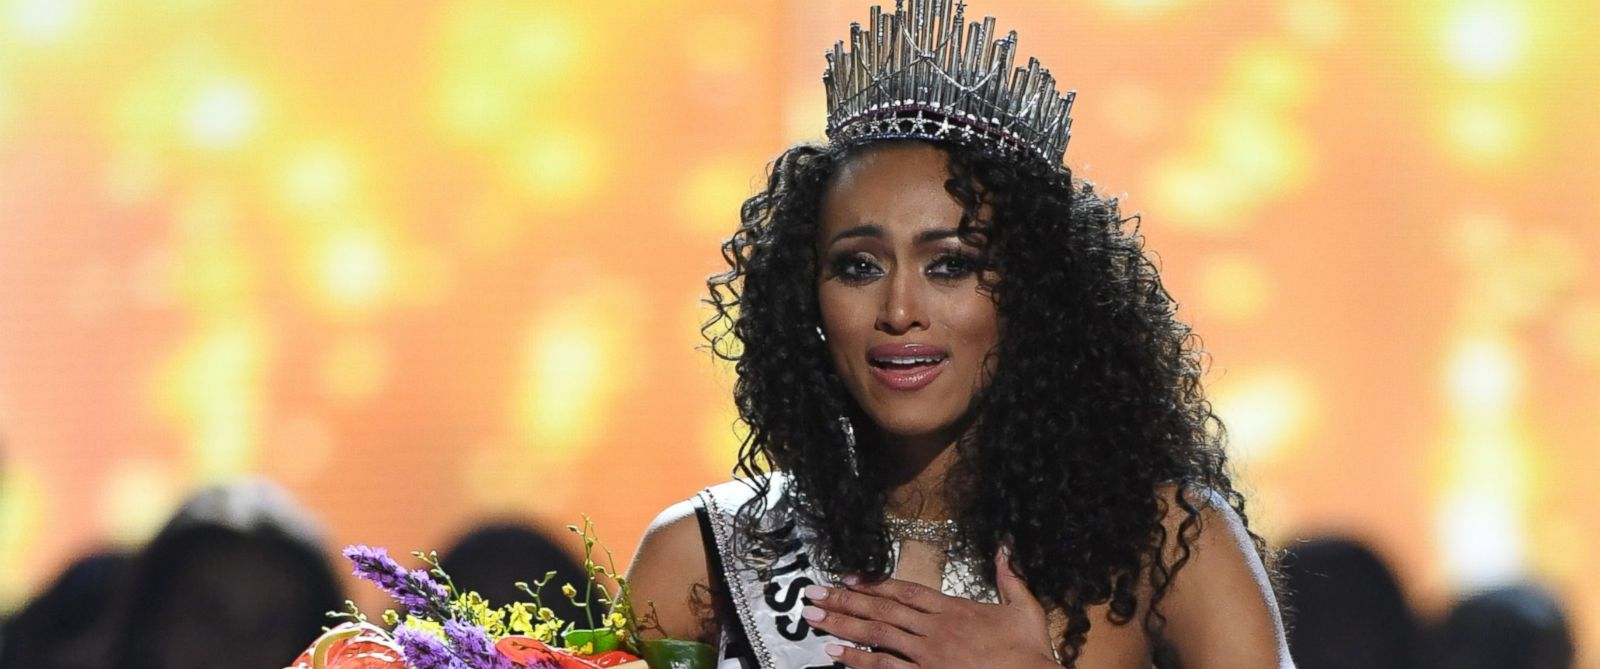 PHOTO: Miss District of Columbia USA 2016 Kara McCullough reacts after being crowned Miss USA 2017 during the Miss USA pageant at the Mandalay Bay Events Center, May 14, 2017, in Las Vegas.